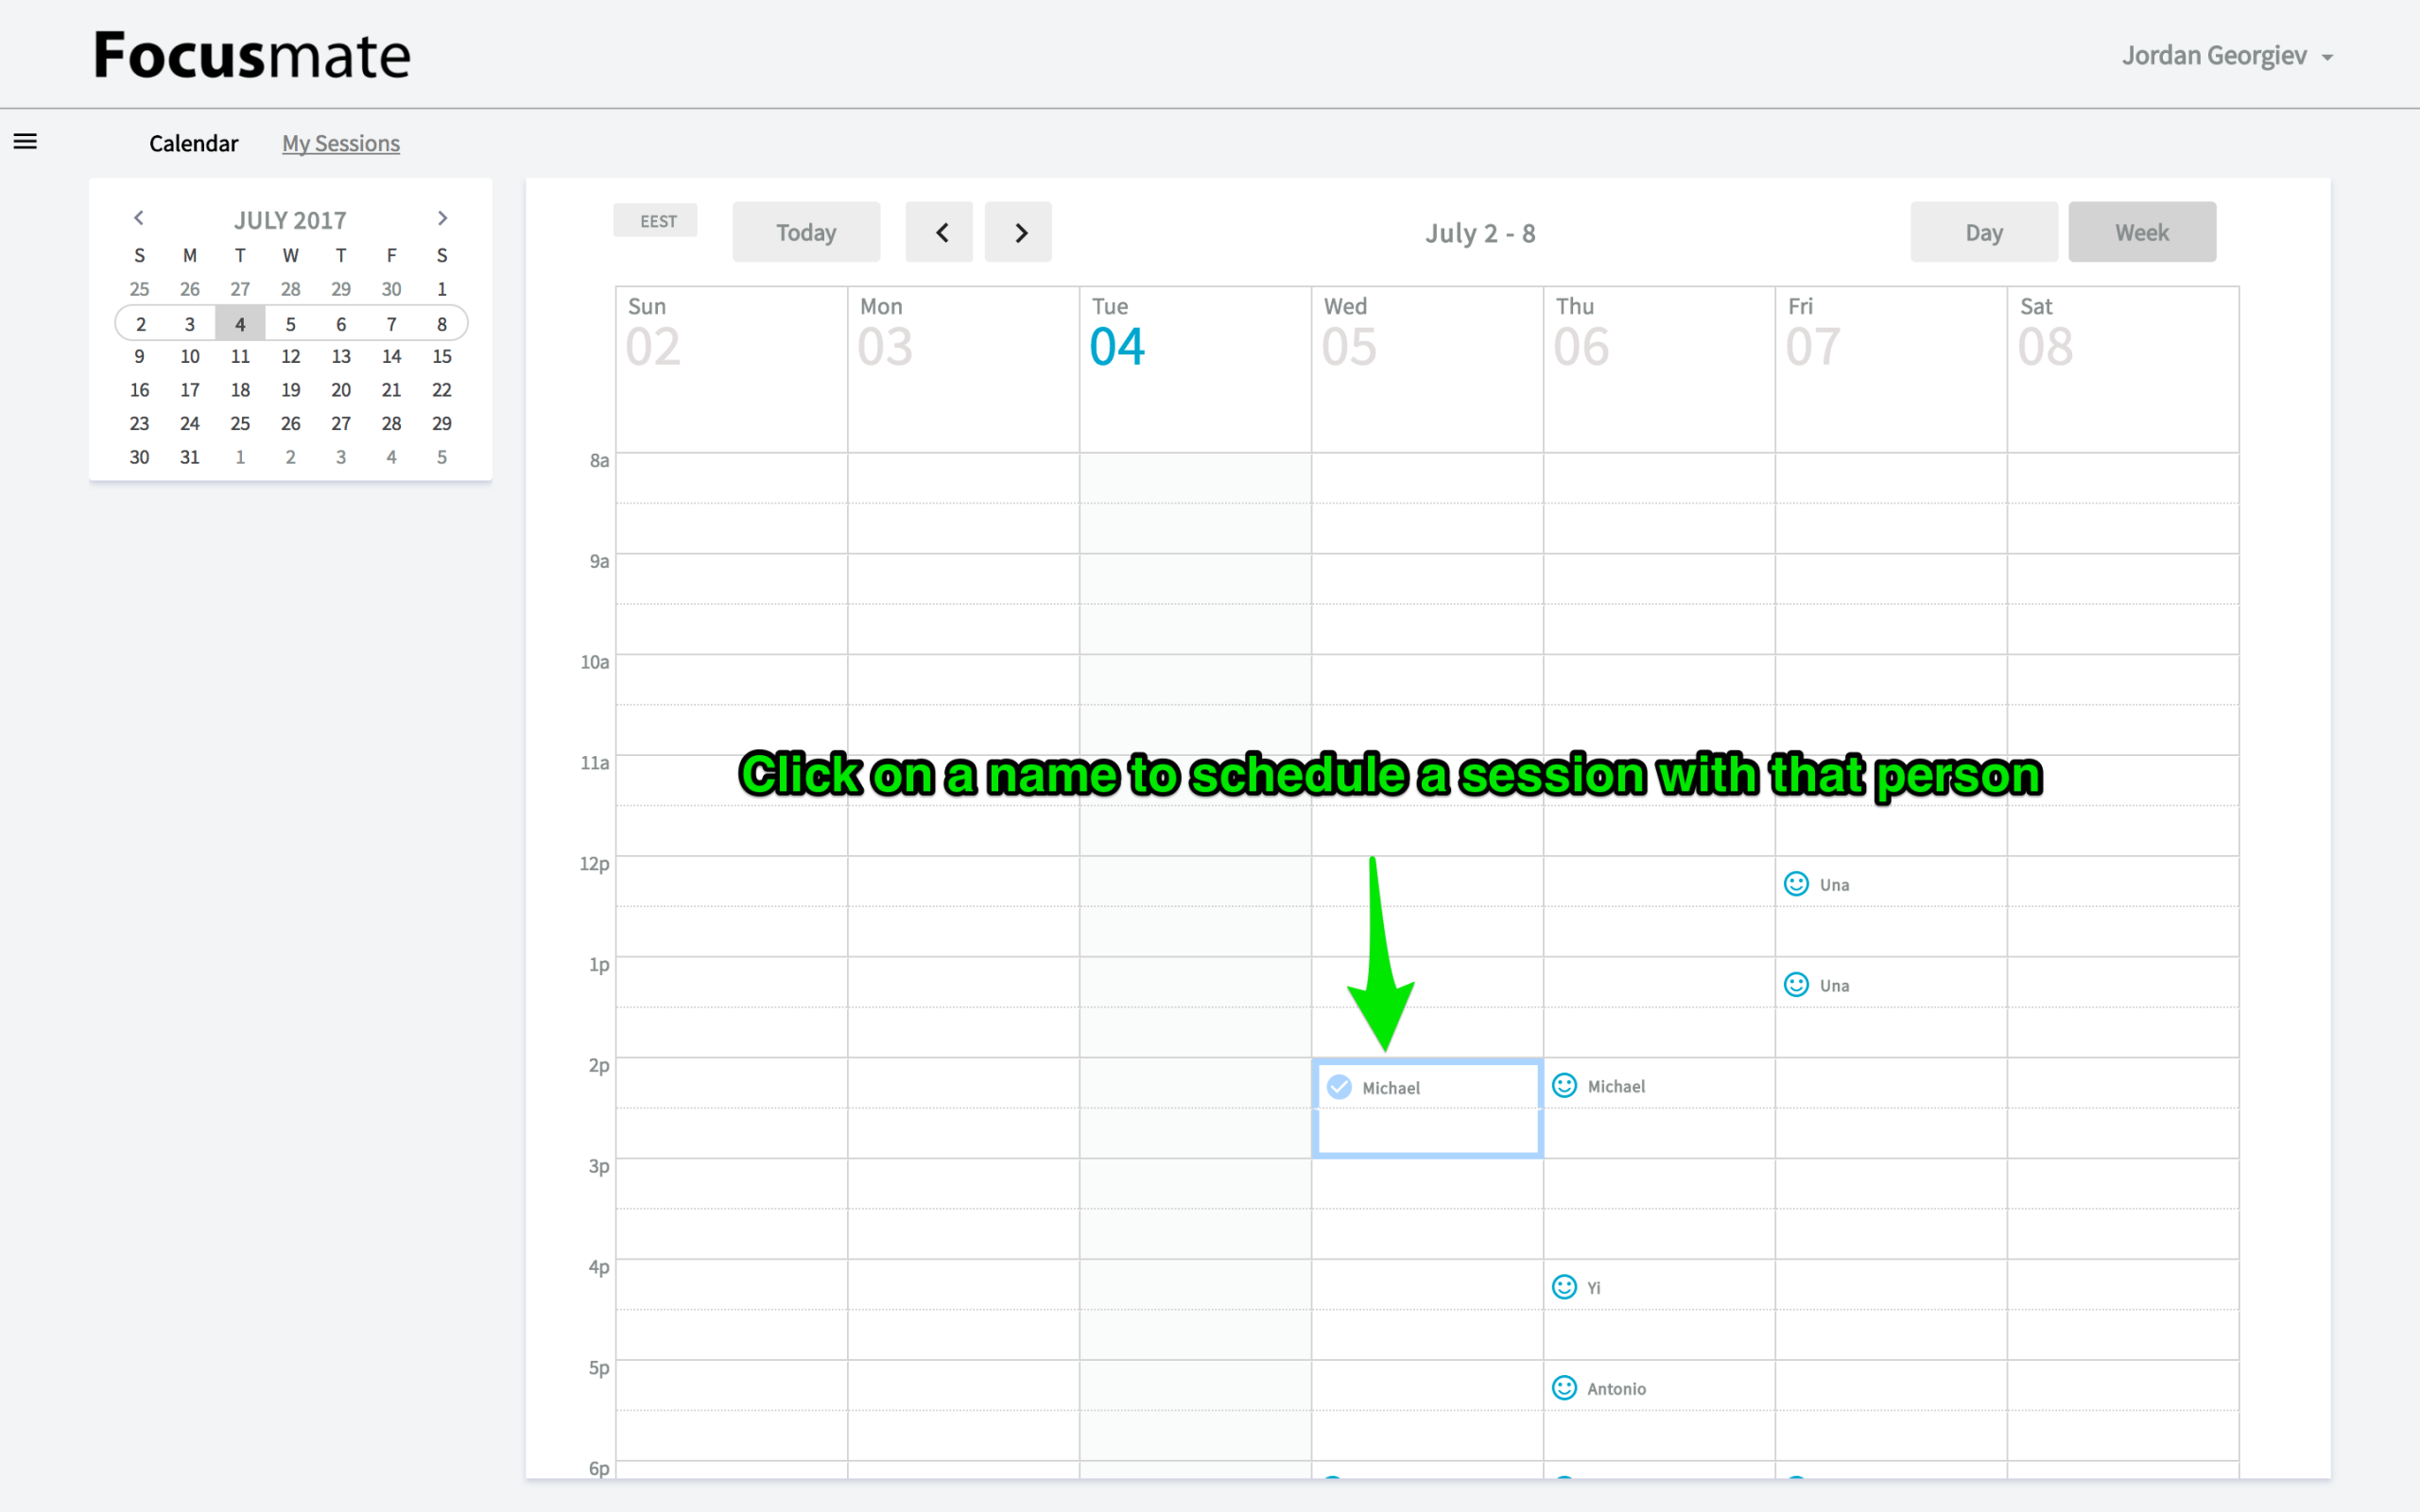 Focusmate: Schedule a session with someone else